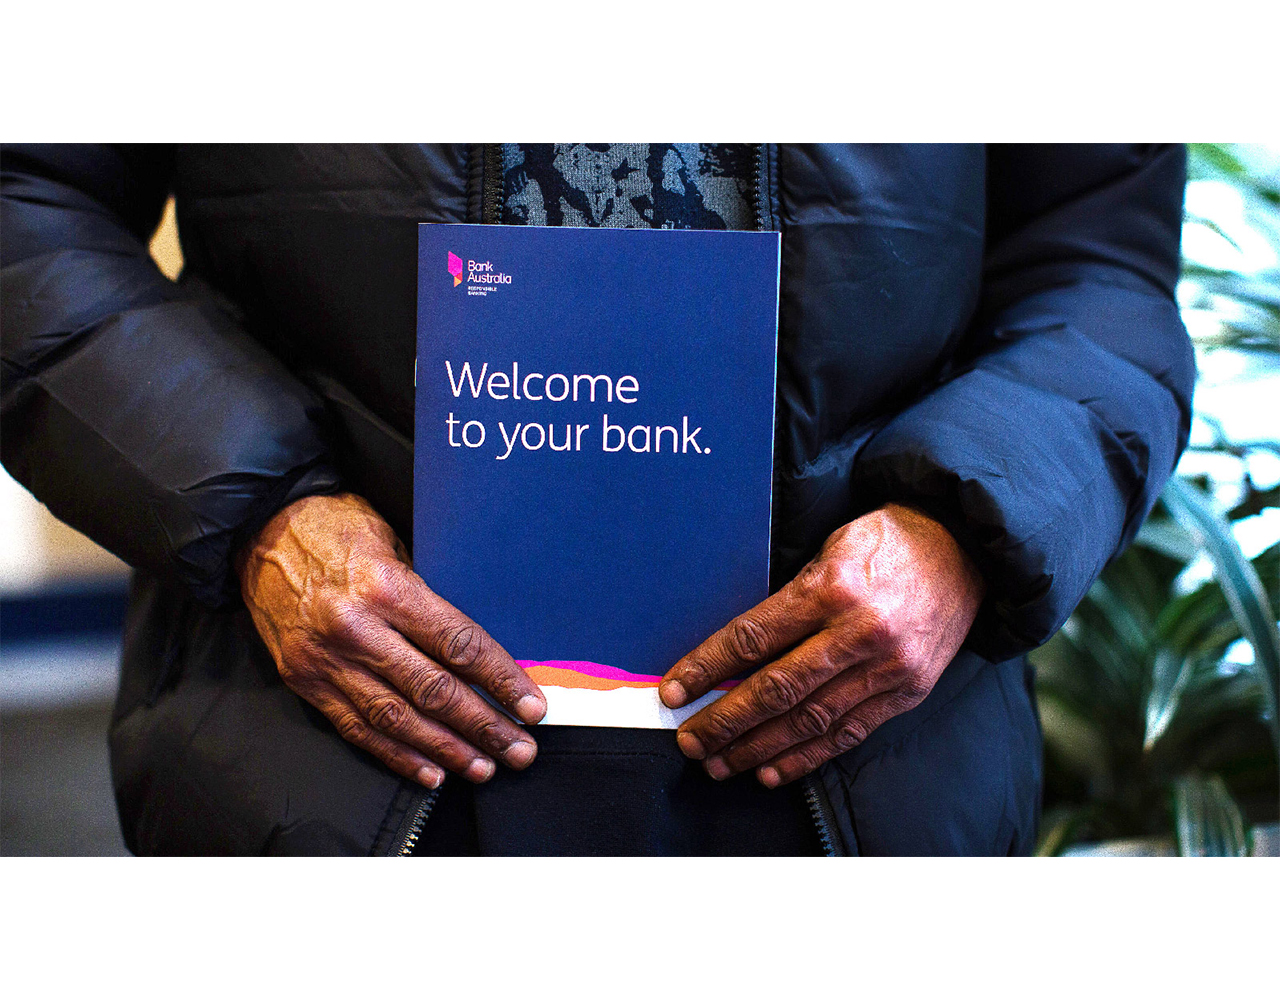 _1280 w_0000_welcome-to-your-bank